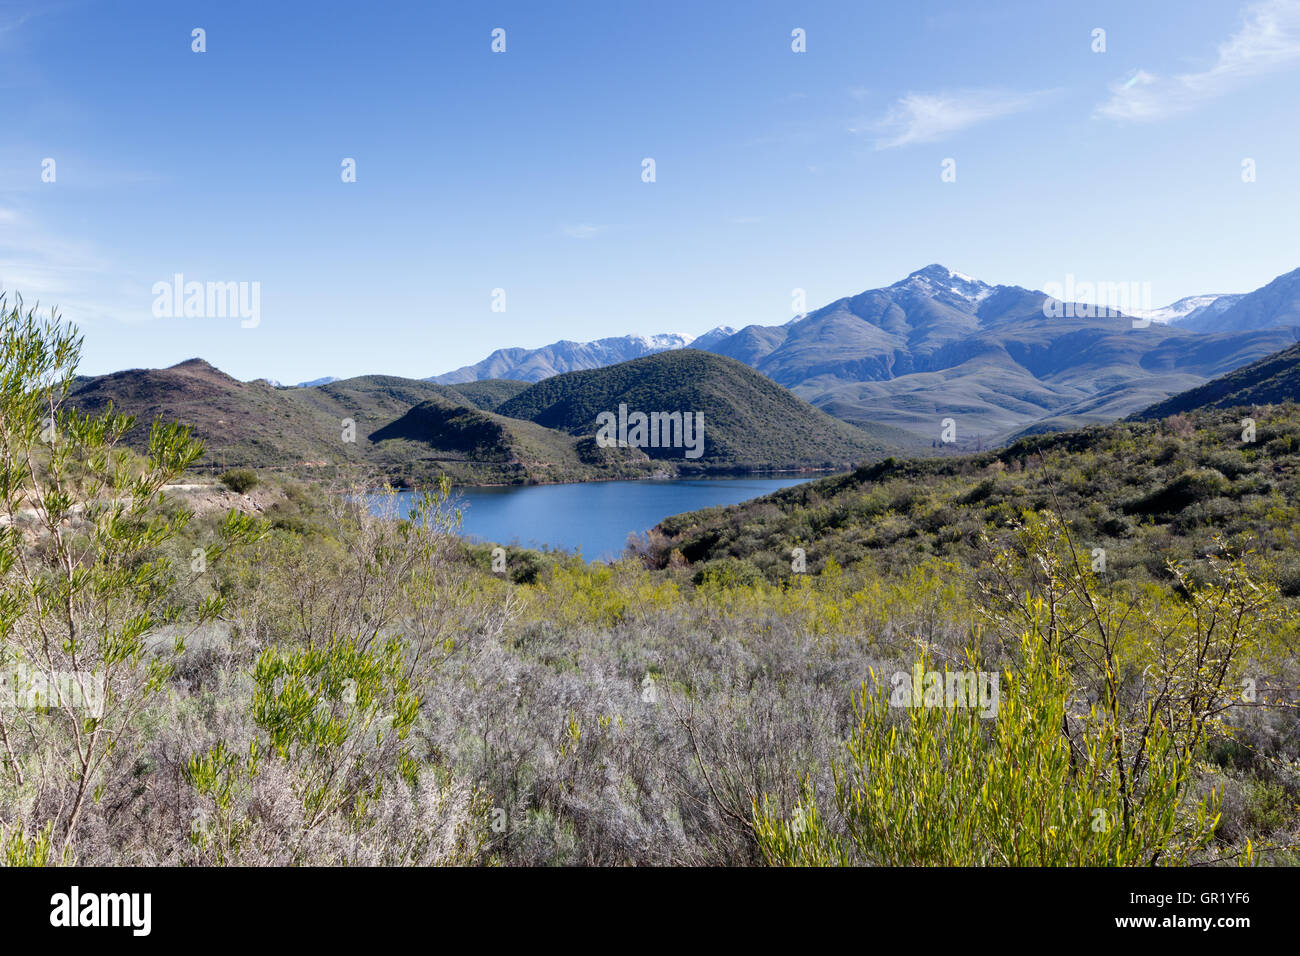 Body of Water near De Rust South Africa - De Rust is a small village at the gateway to the Klein Karoo, South Africa. - Stock Image